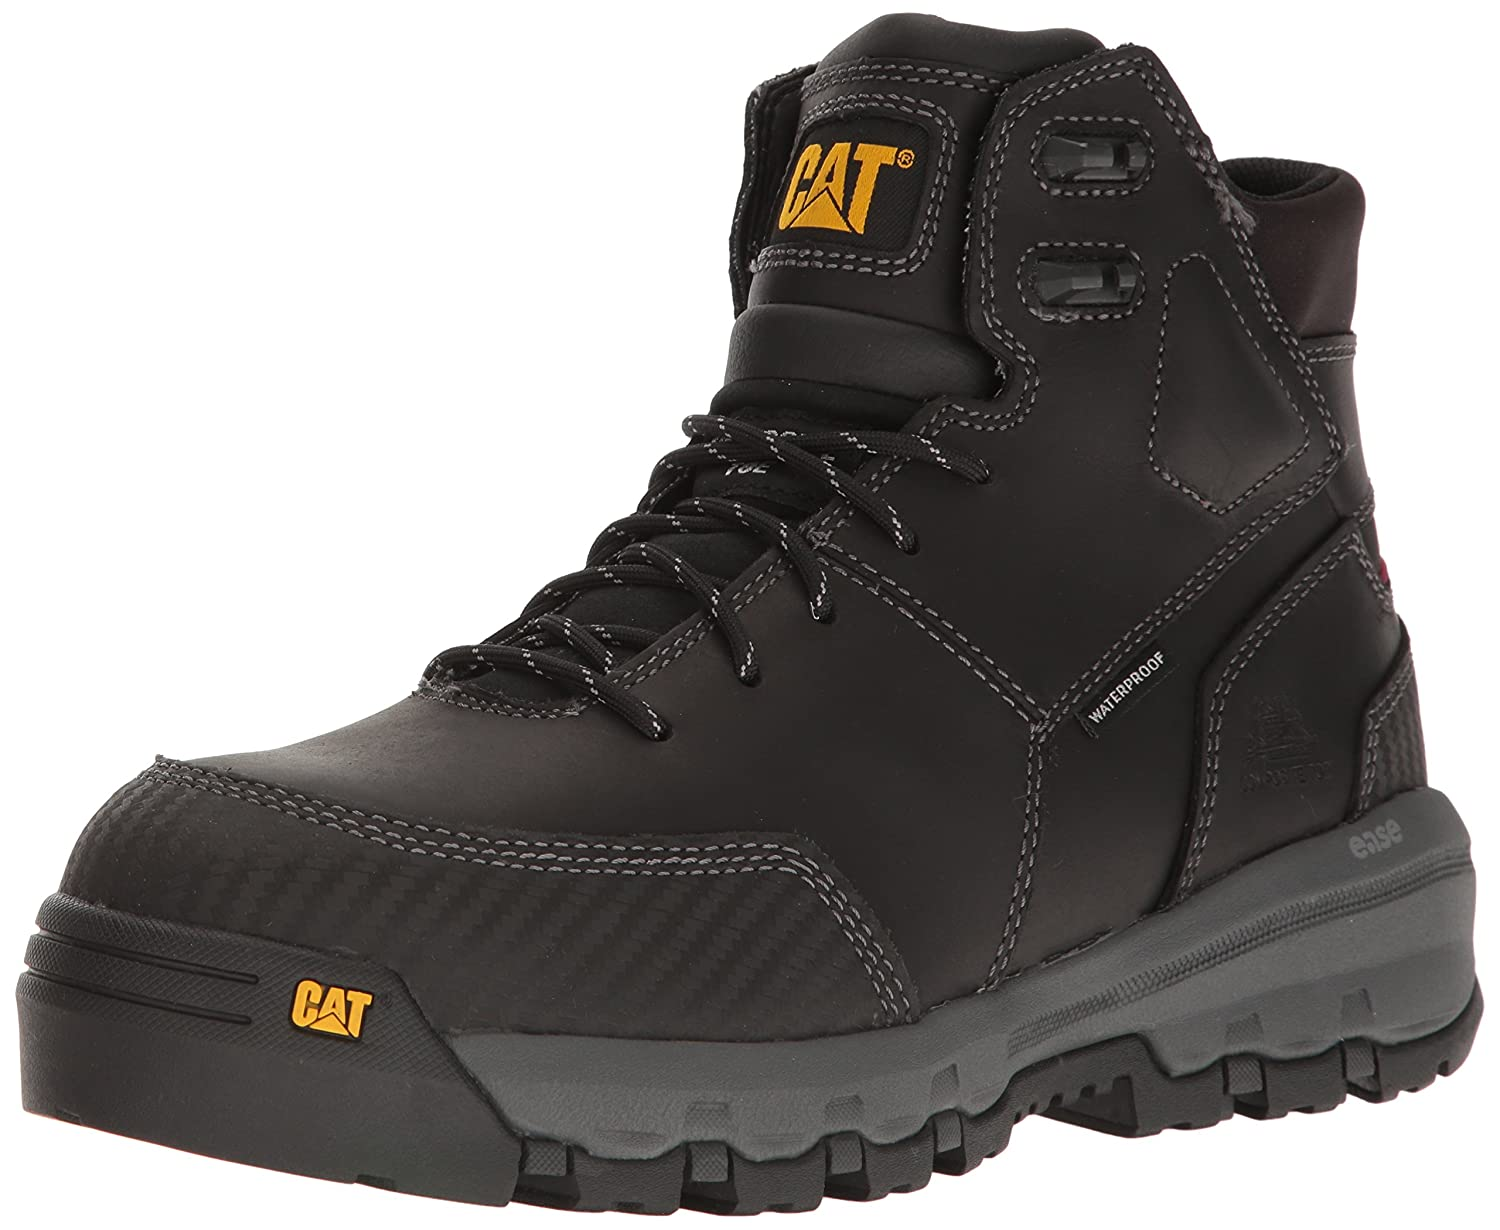 CaterpillarDevice Waterproof Composite Safety Toe